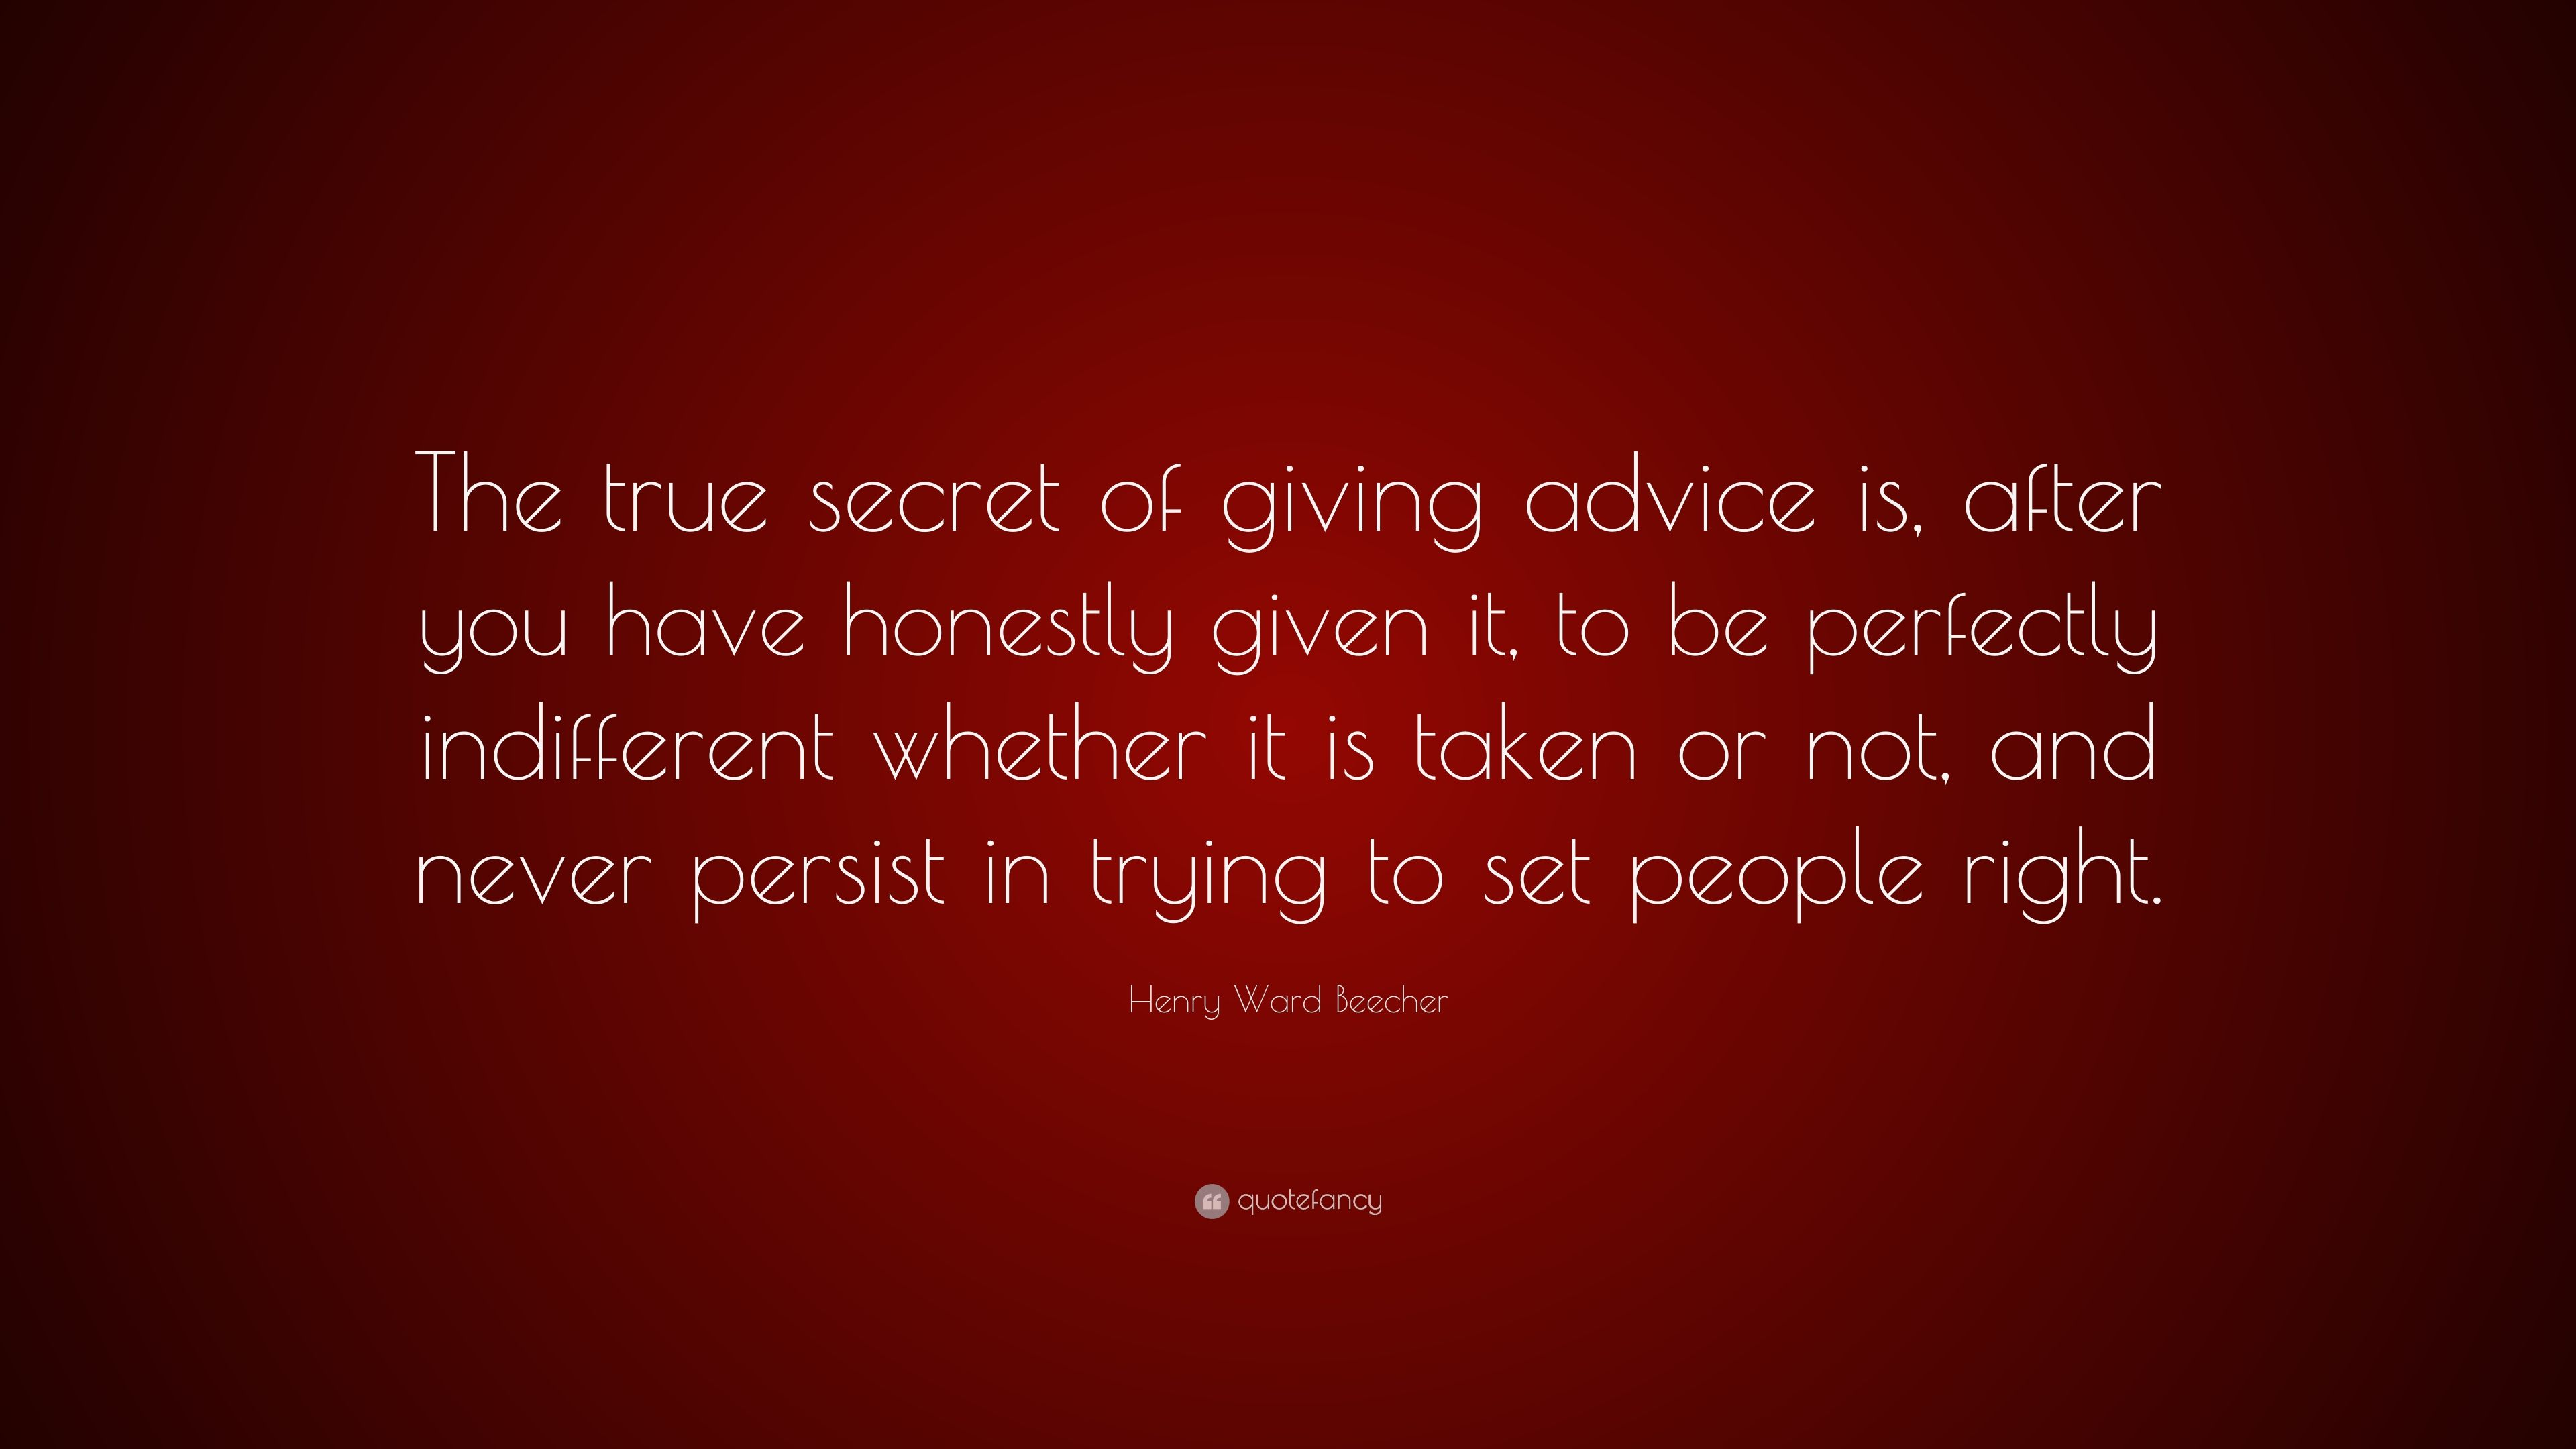 Superb Henry Ward Beecher Quote: U201cThe True Secret Of Giving Advice Is, After You